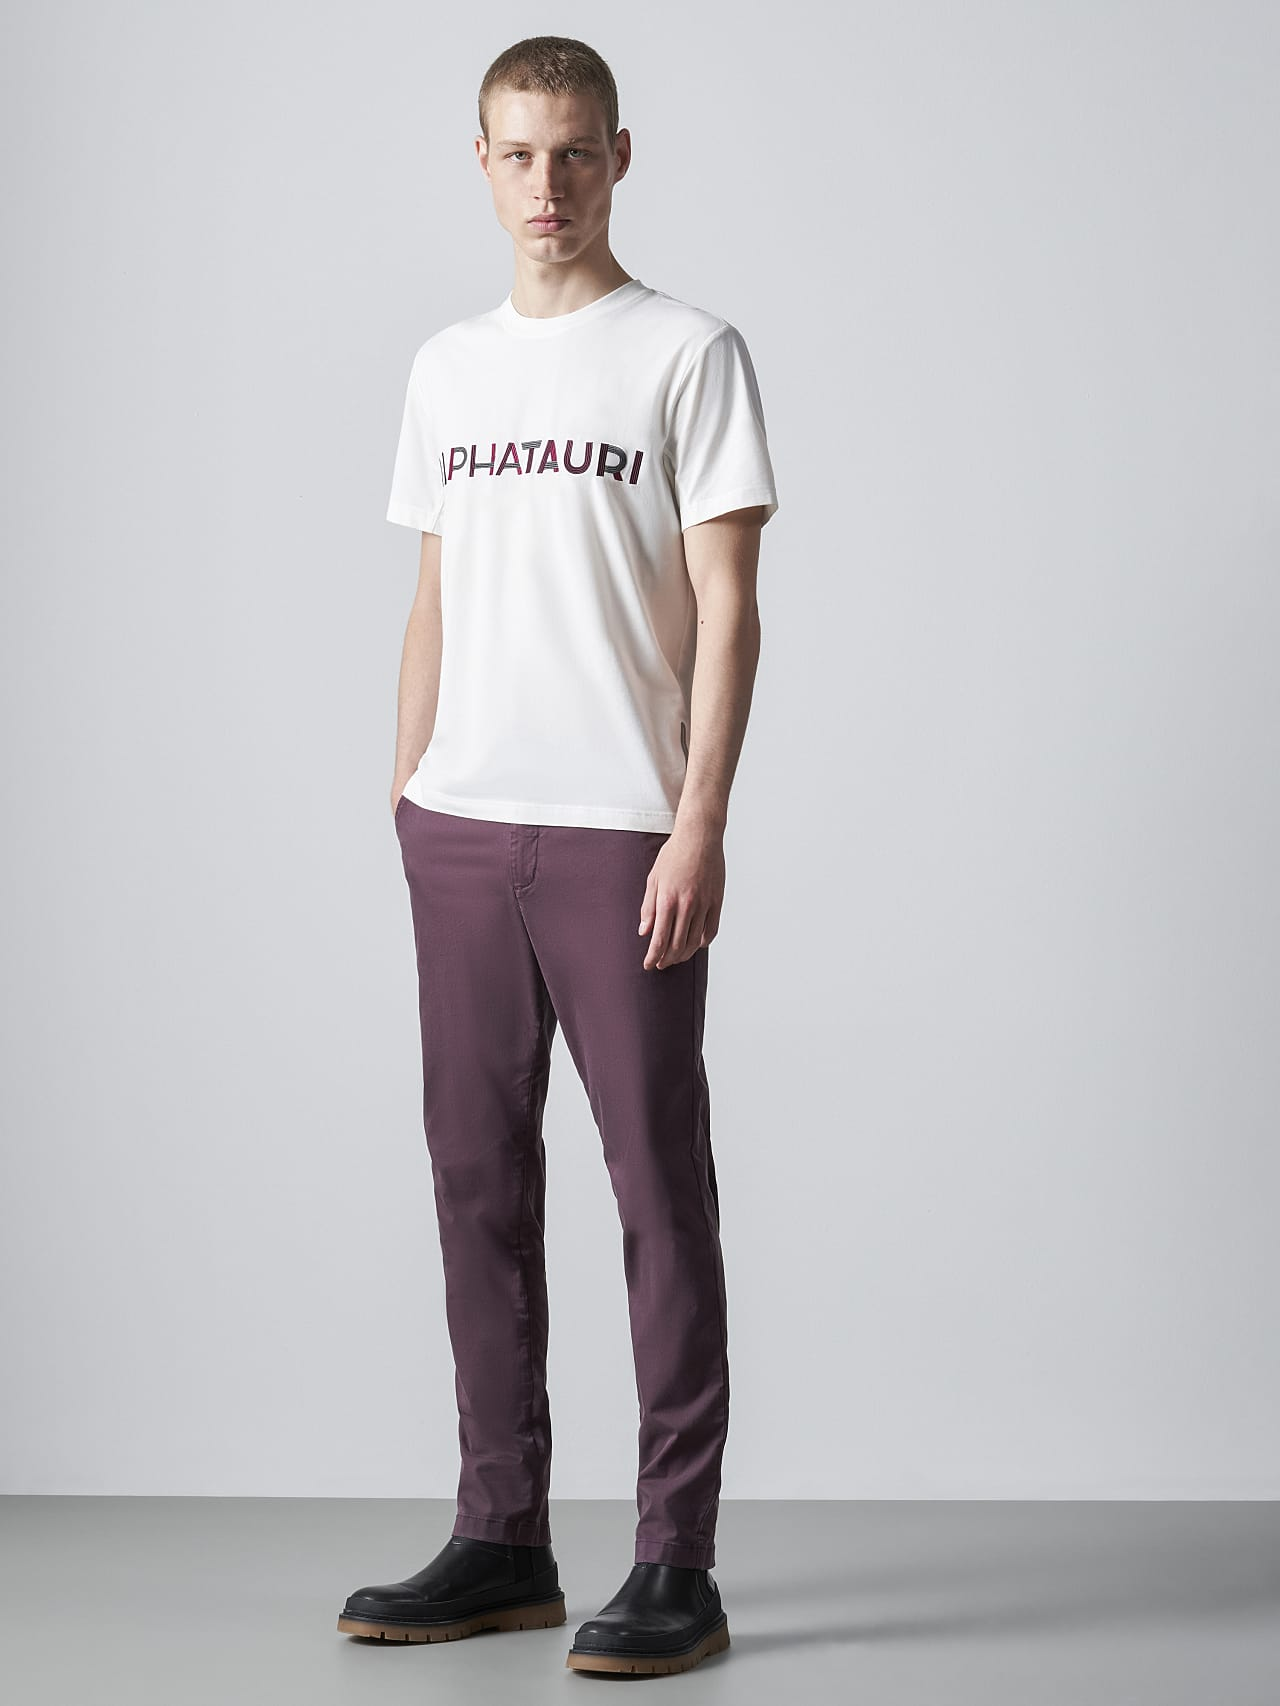 JANOS V3.Y5.02 Logo Embroidery T-Shirt offwhite Front Alpha Tauri